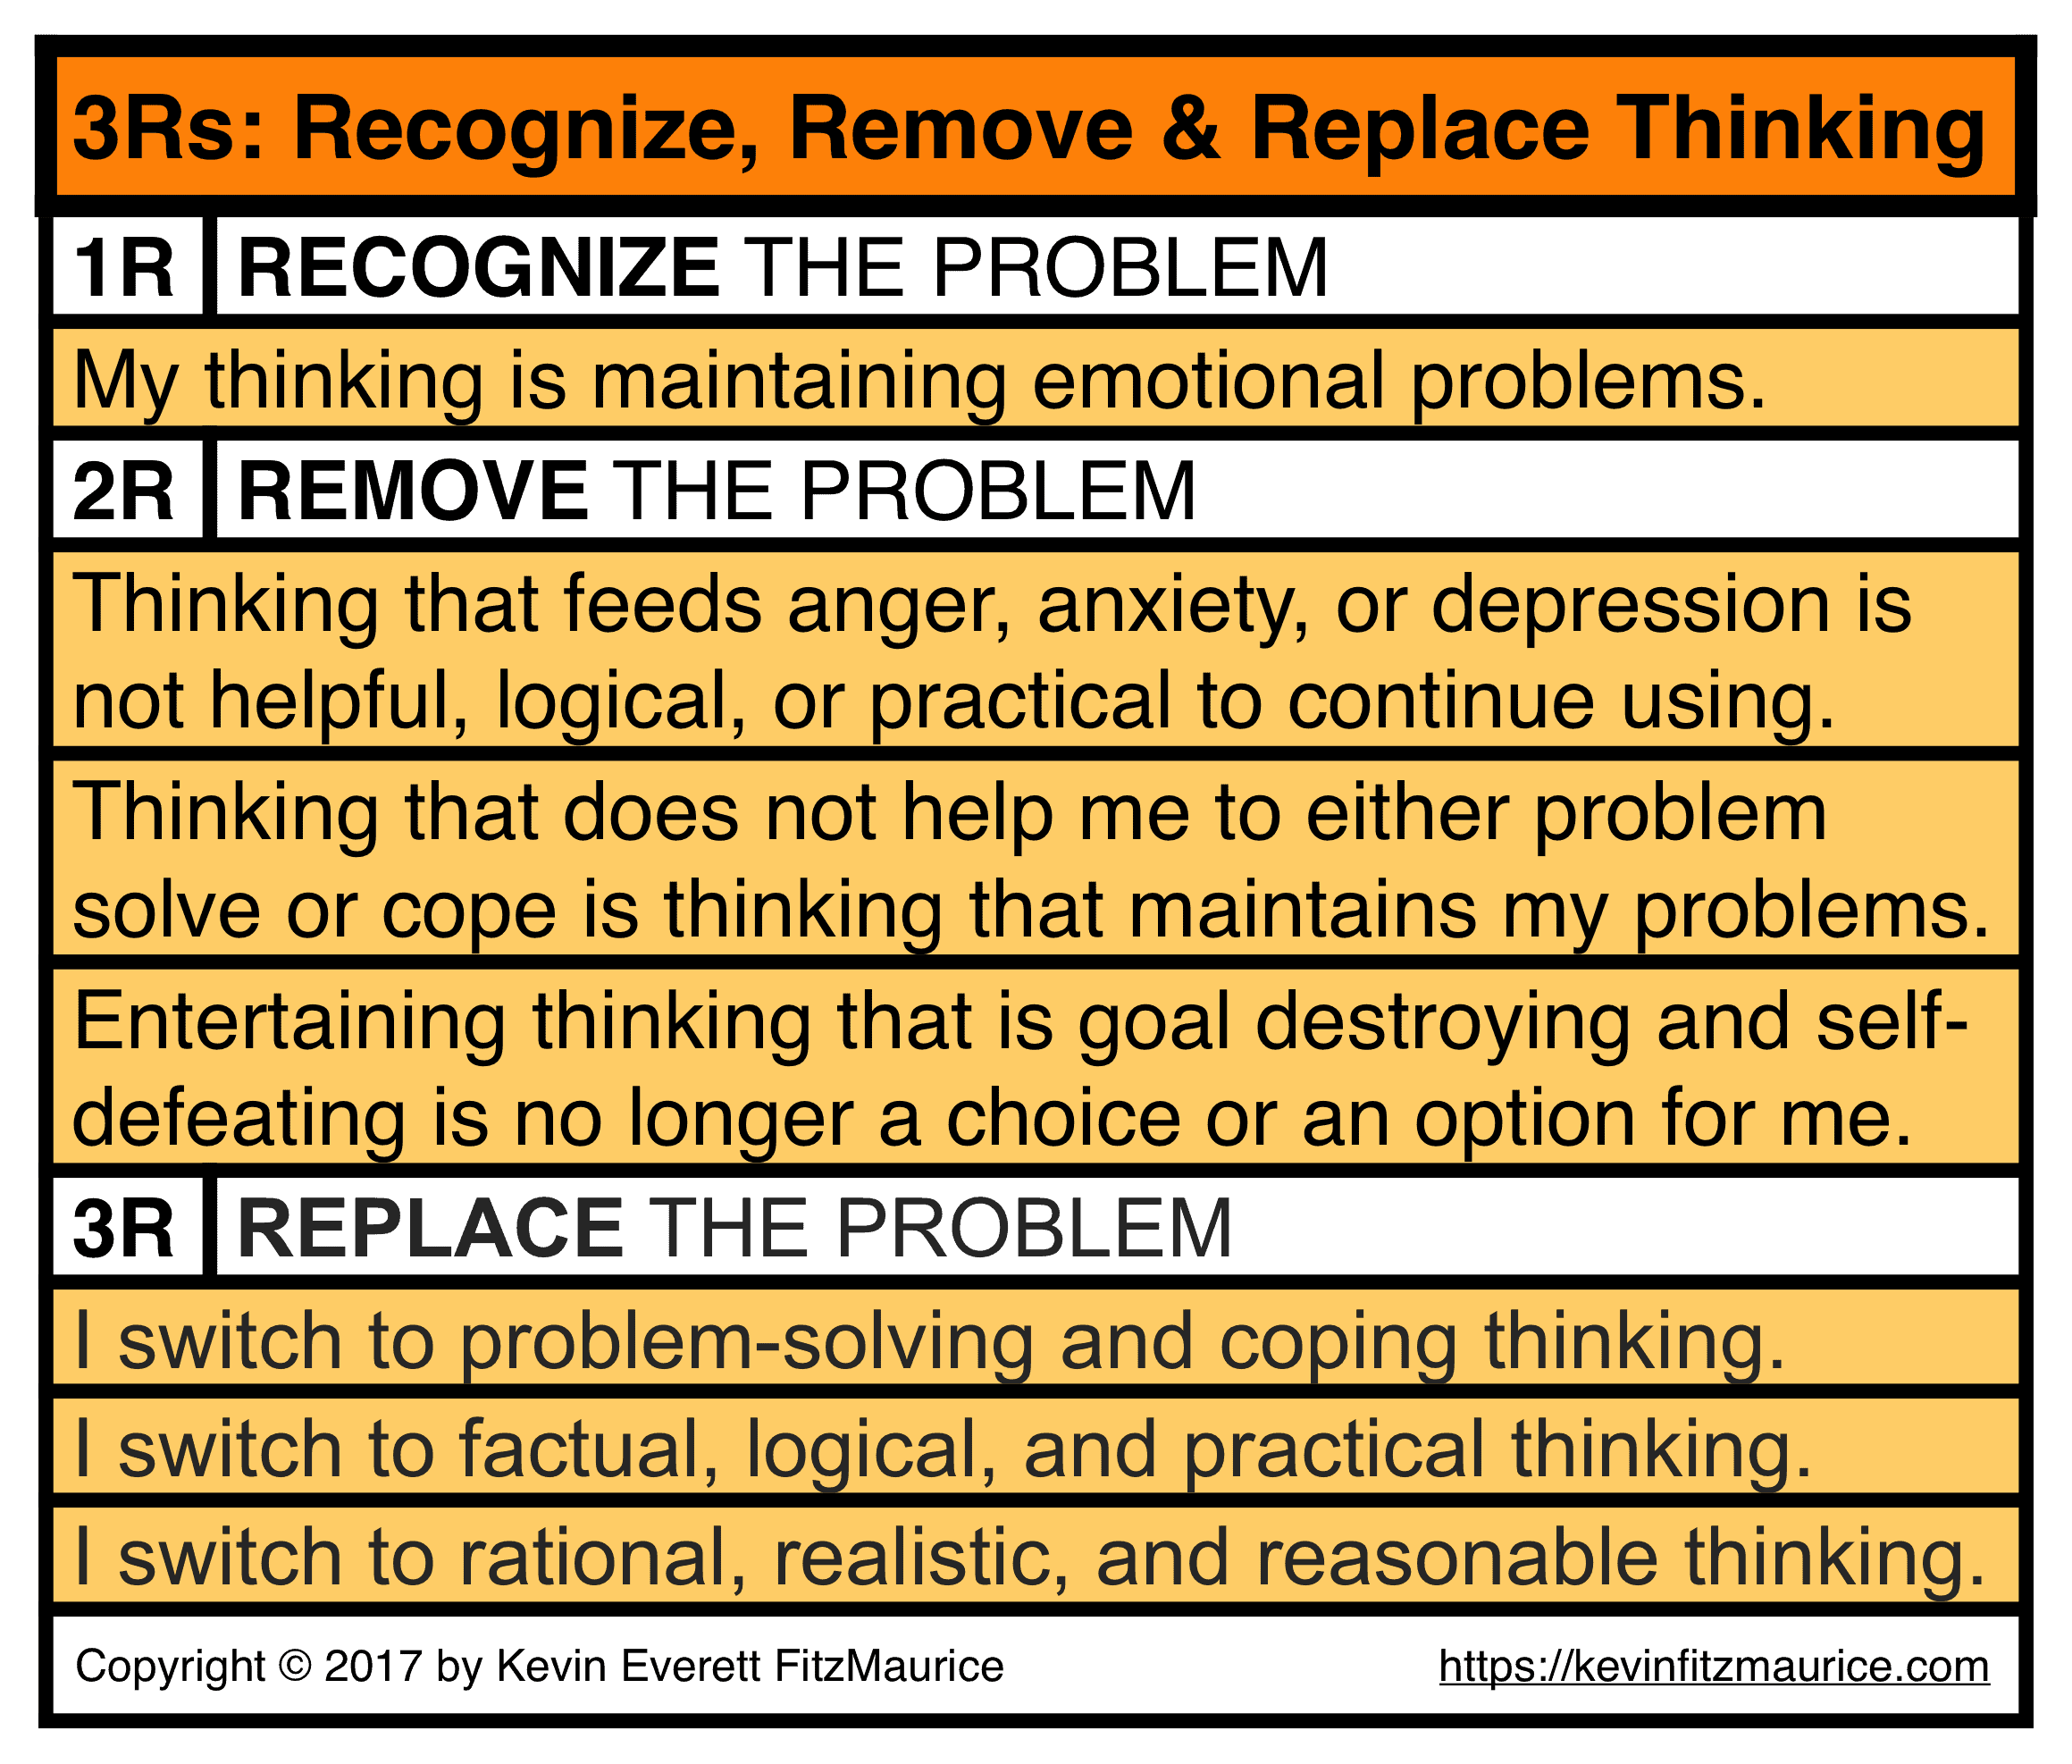 3RS Used to Replace Thinking